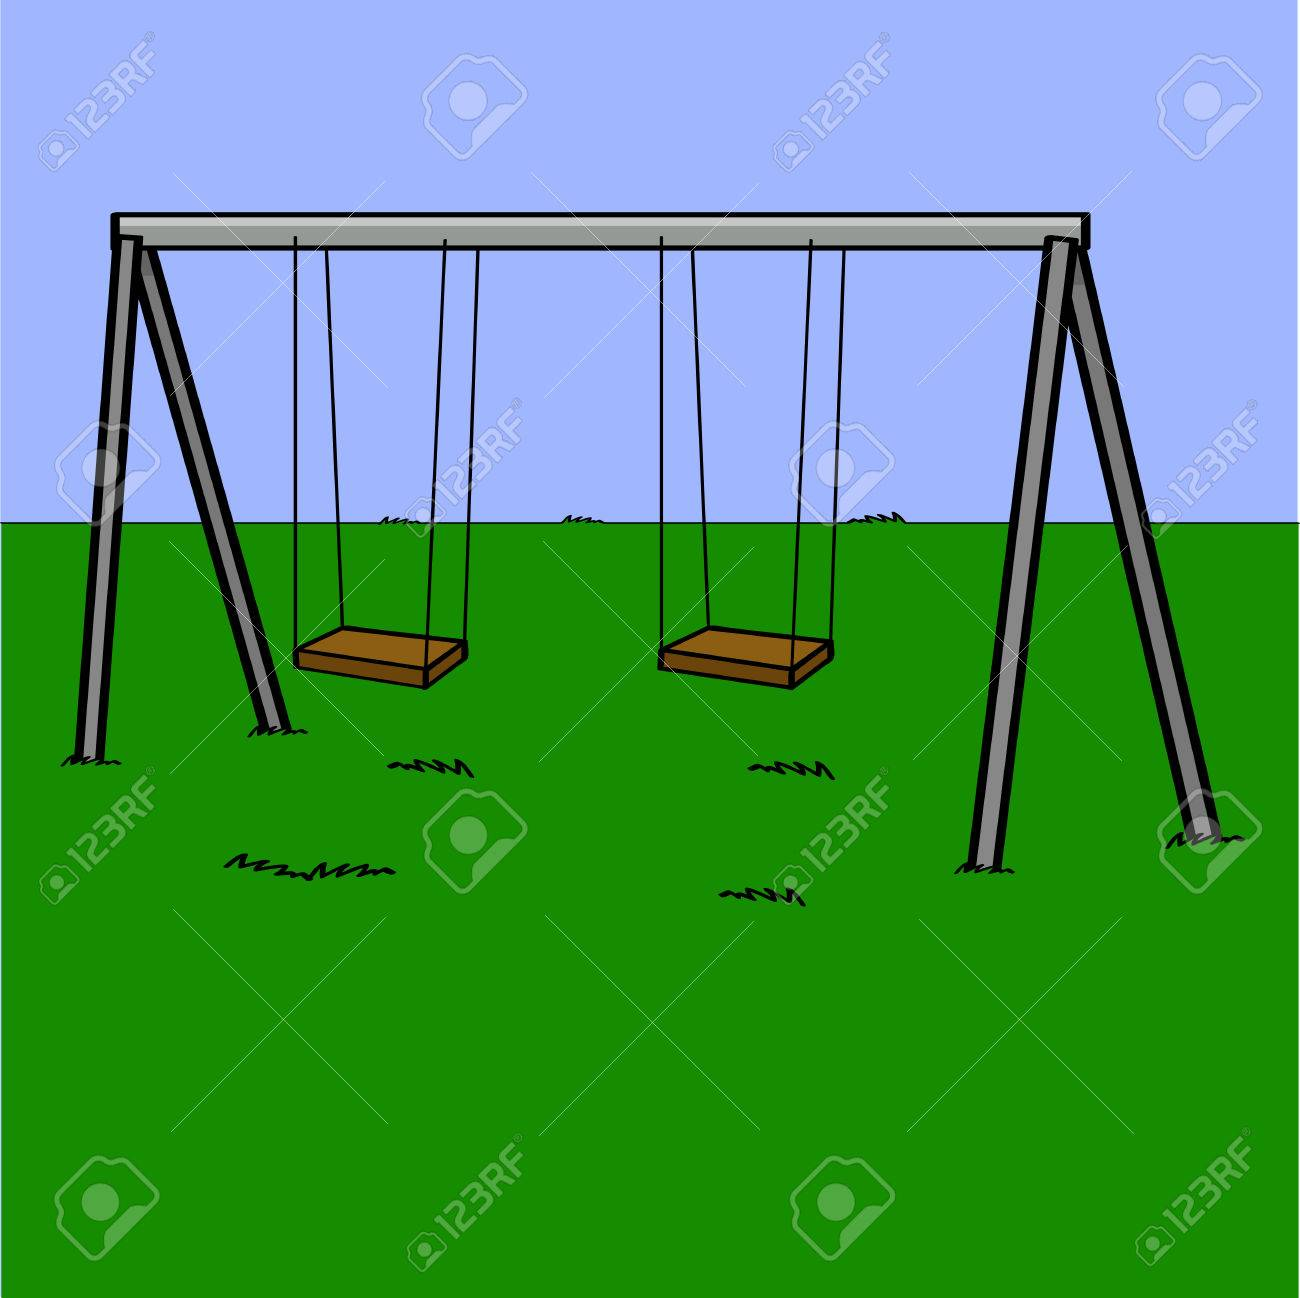 Cartoon Illustration Showing An Abandoned Playground Swing Set Royalty Free Cliparts Vectors And Stock Illustration Image 26779666